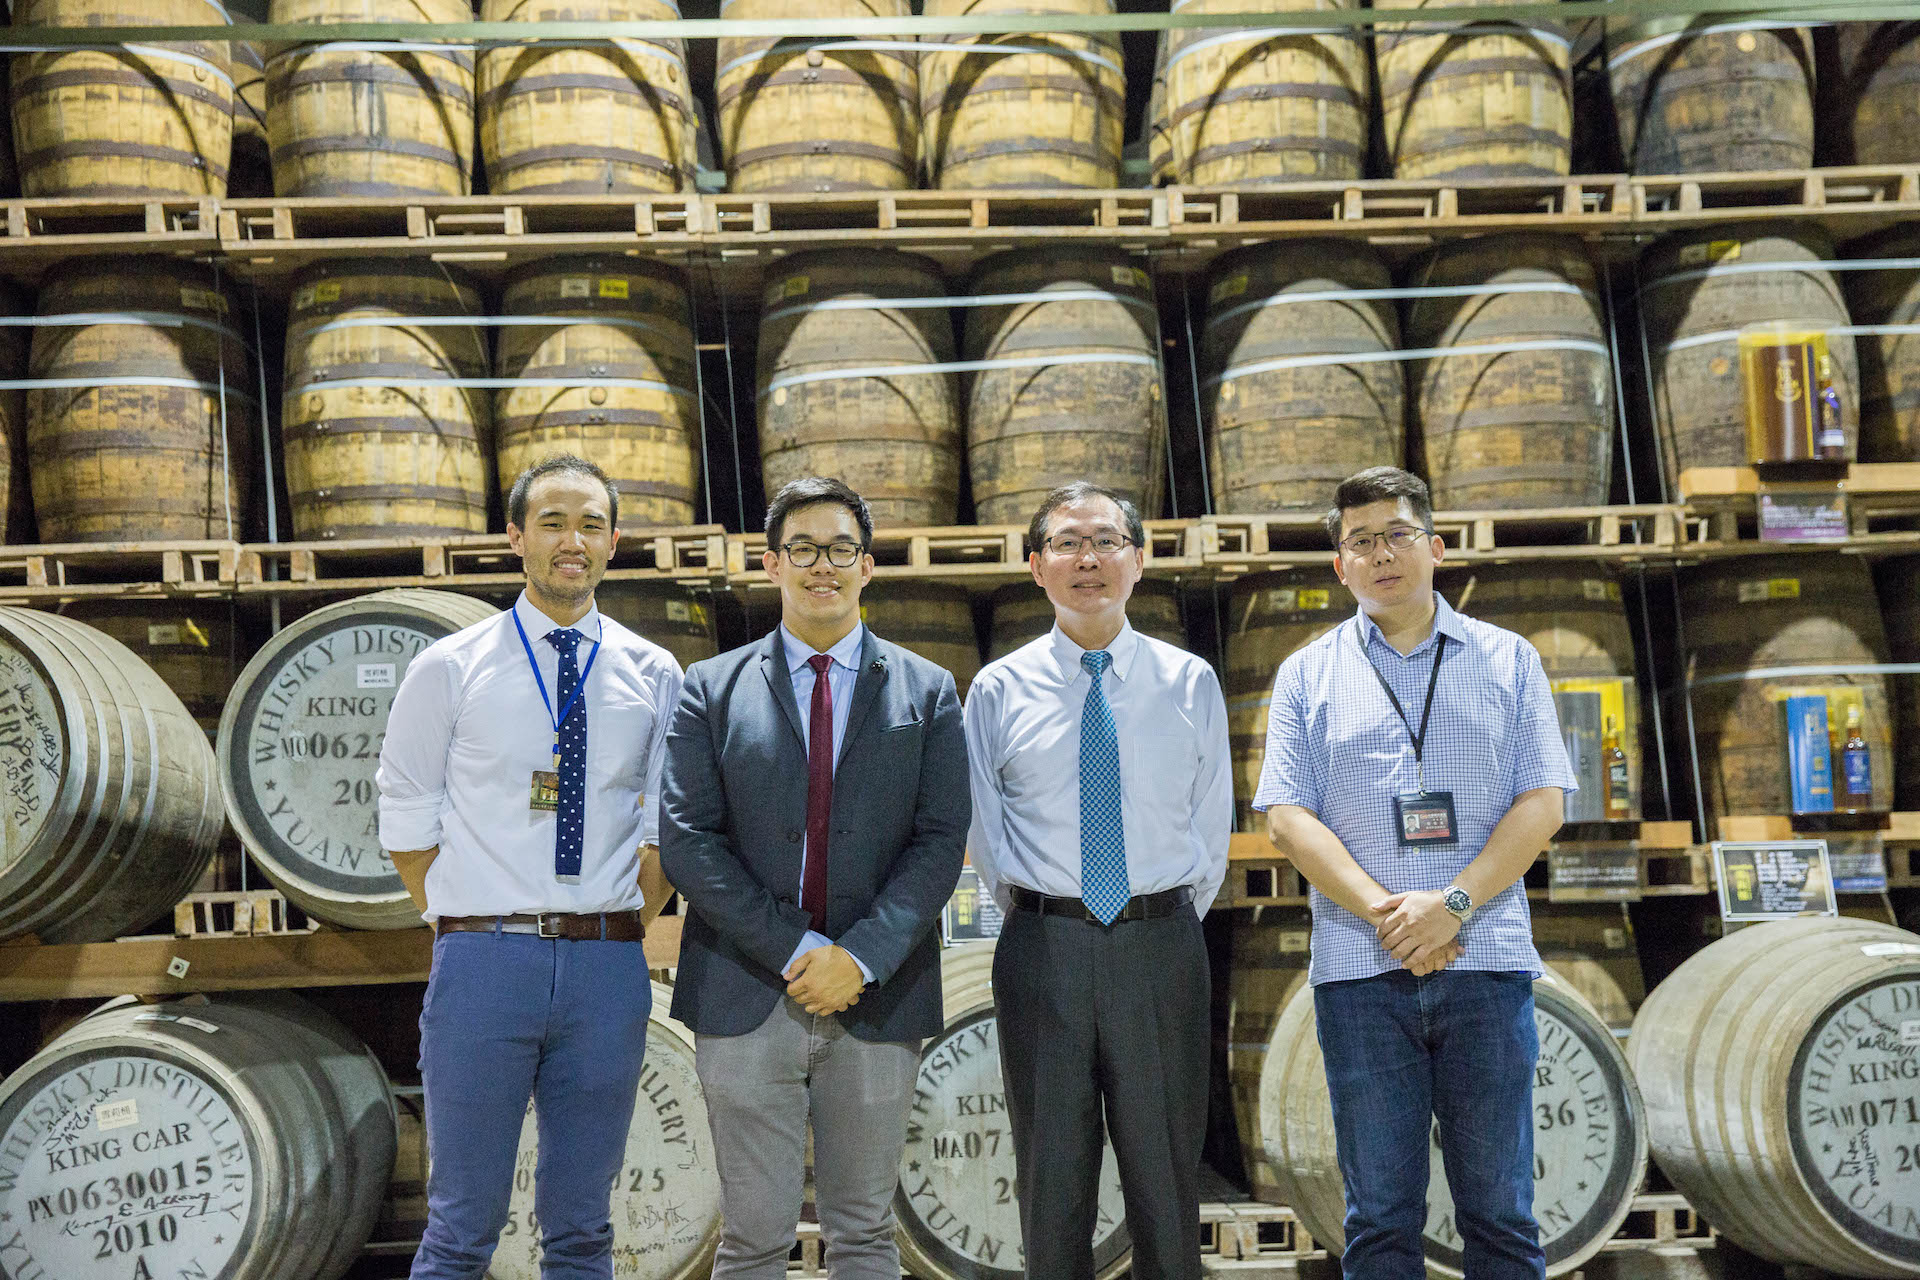 That classic Asian press photo, featuring Ian Chang (right), Kavalan CEO Albert Lee (second to right), GRM CEO George Ko (second to left), and Product Manager of Kobot Ted Ko (left).